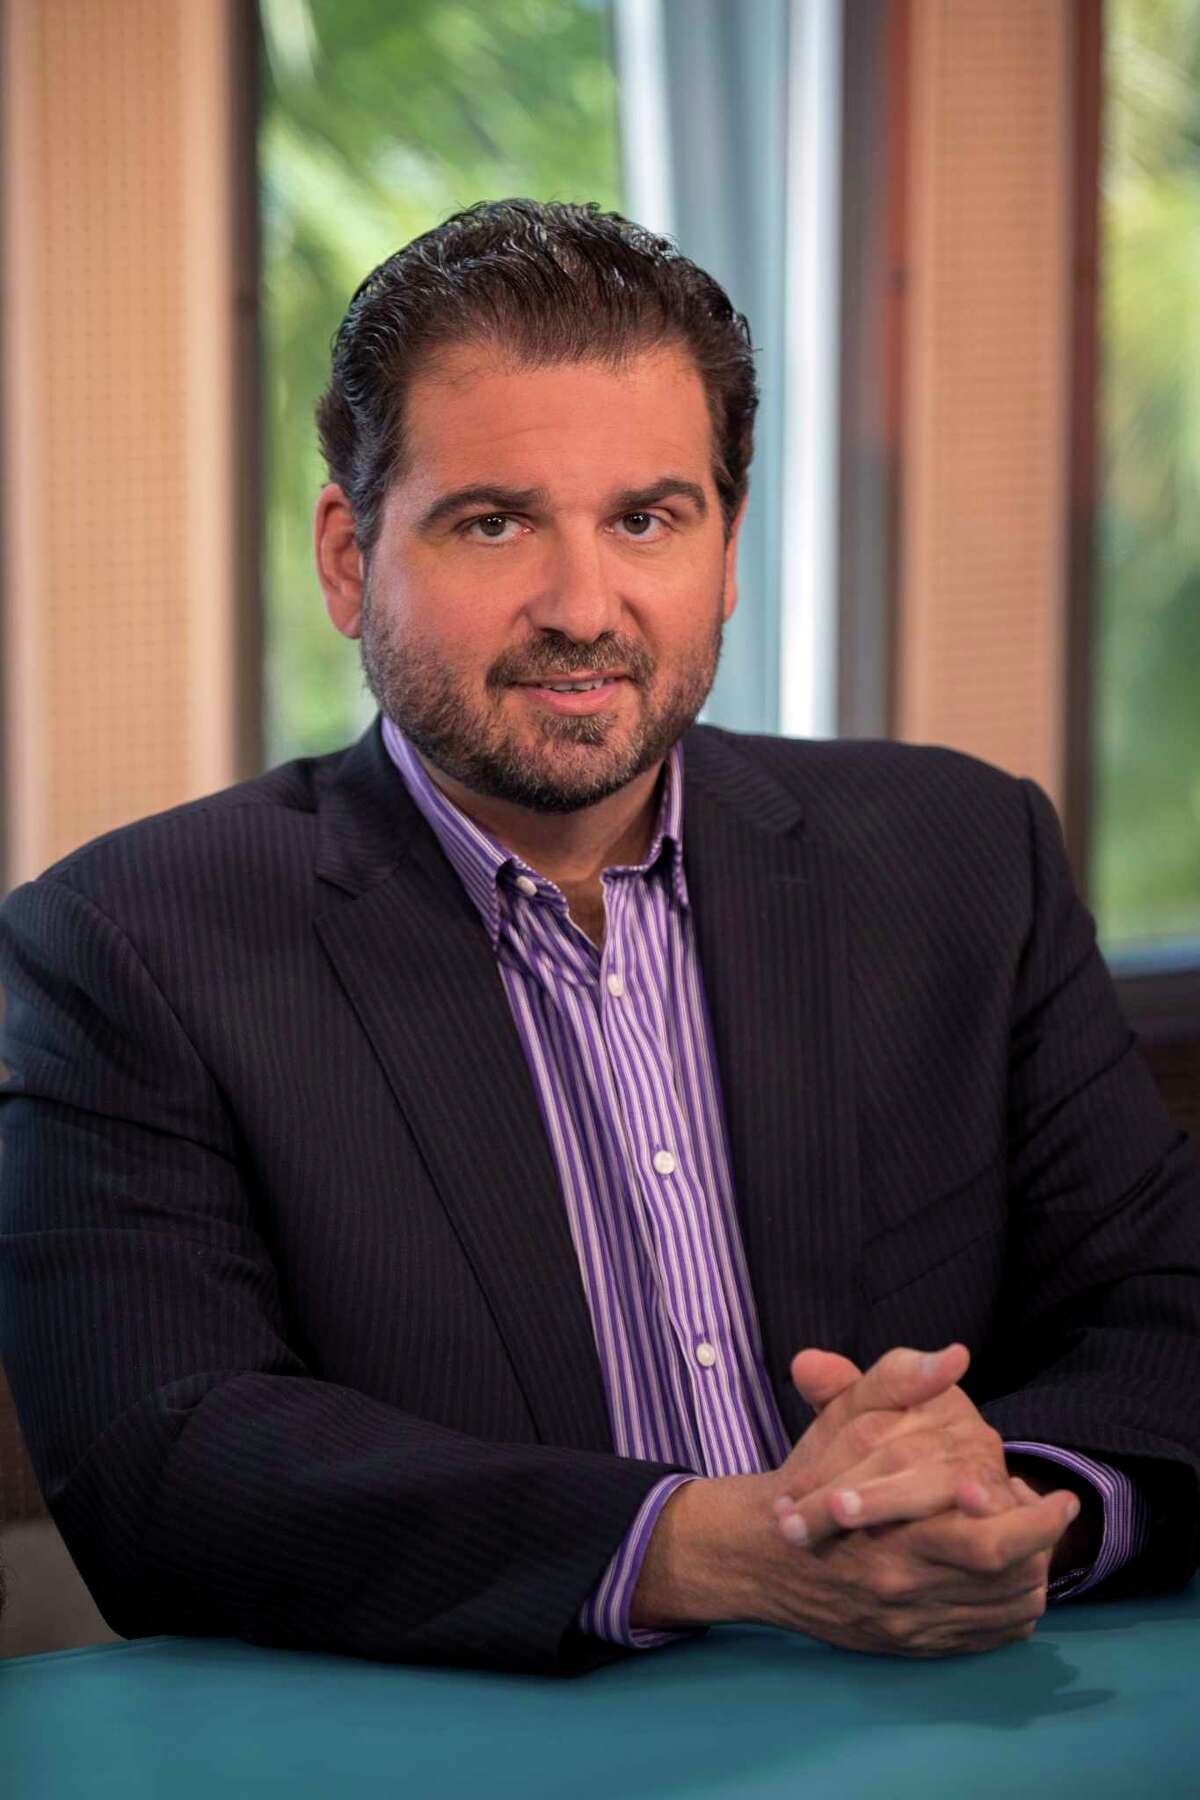 This Nov. 11, 2014, photo provided by ESPN shows Dan Le Batard on the set of Highly Questionable in Miami, Fla. ESPN's Dan Le Batard was away from his radio show Monday, July 22, 2019, after attracting attention for criticizing President Donald Trump's racist tweets and his network's policy of avoiding politics unless it involved sports. (Rodrigo Varela/ ESPN Images via AP)